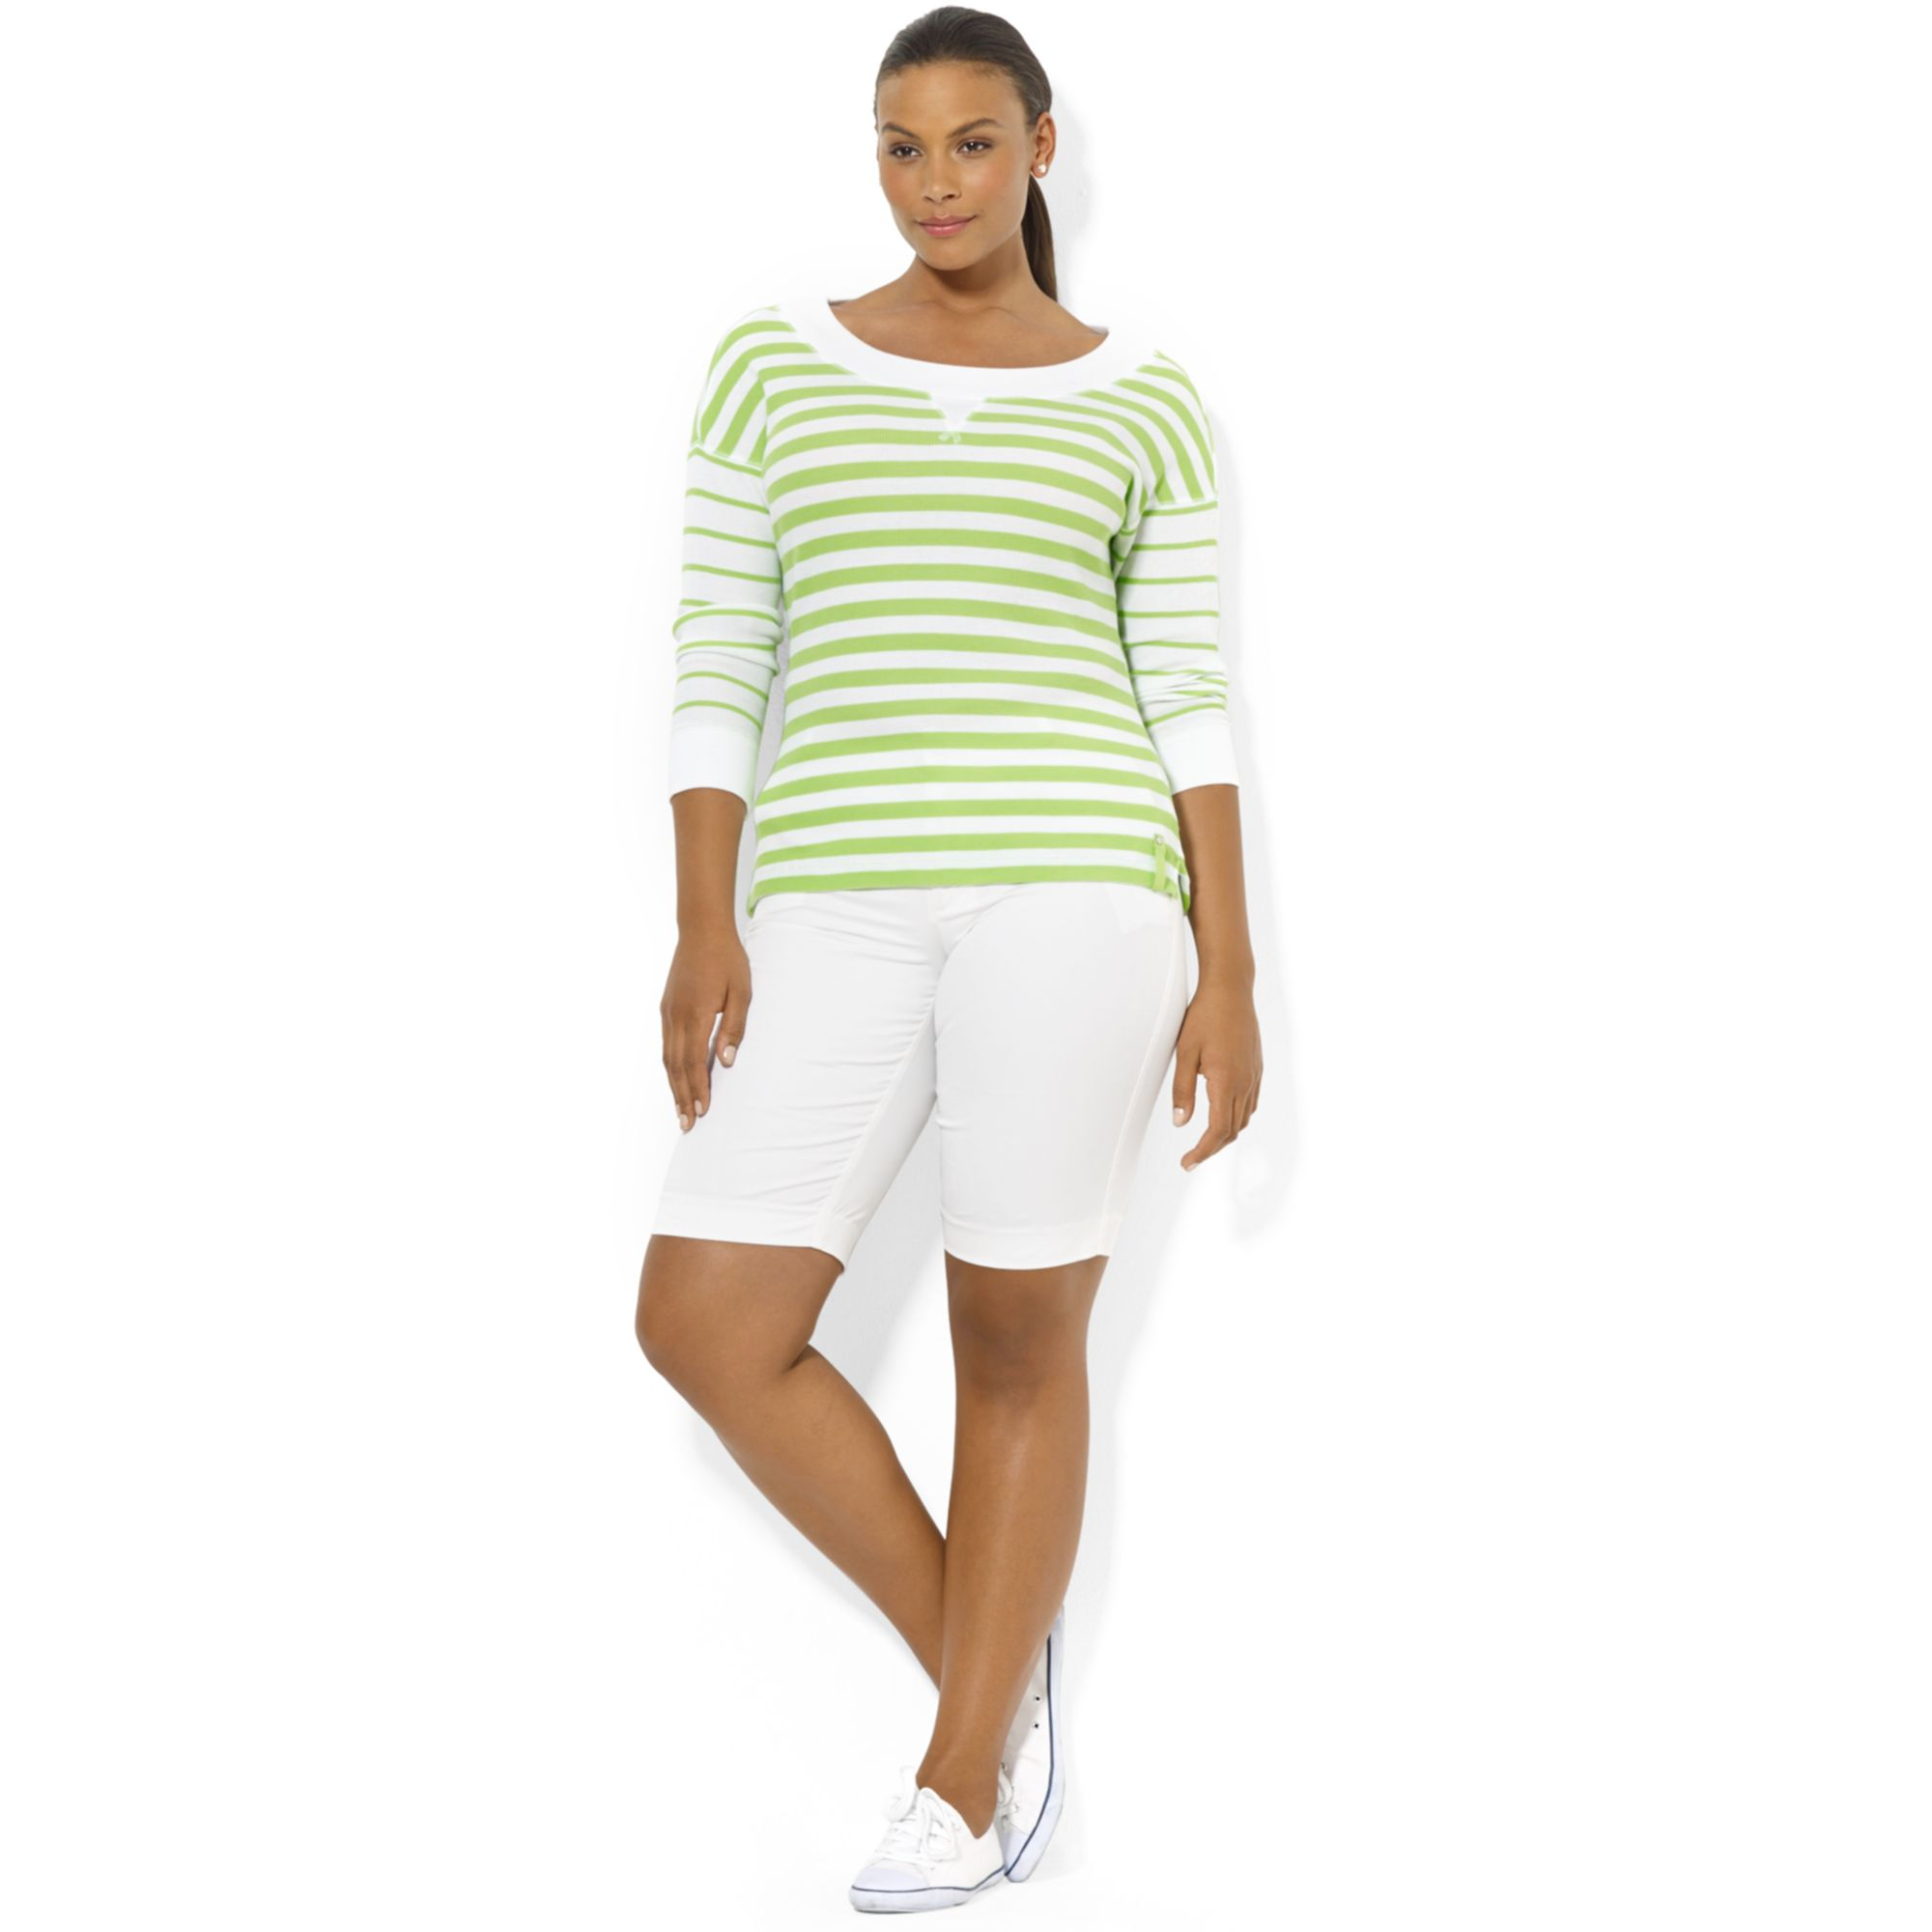 lauren by ralph lauren plus size longsleeve striped waffleknit top in green urban lime white. Black Bedroom Furniture Sets. Home Design Ideas